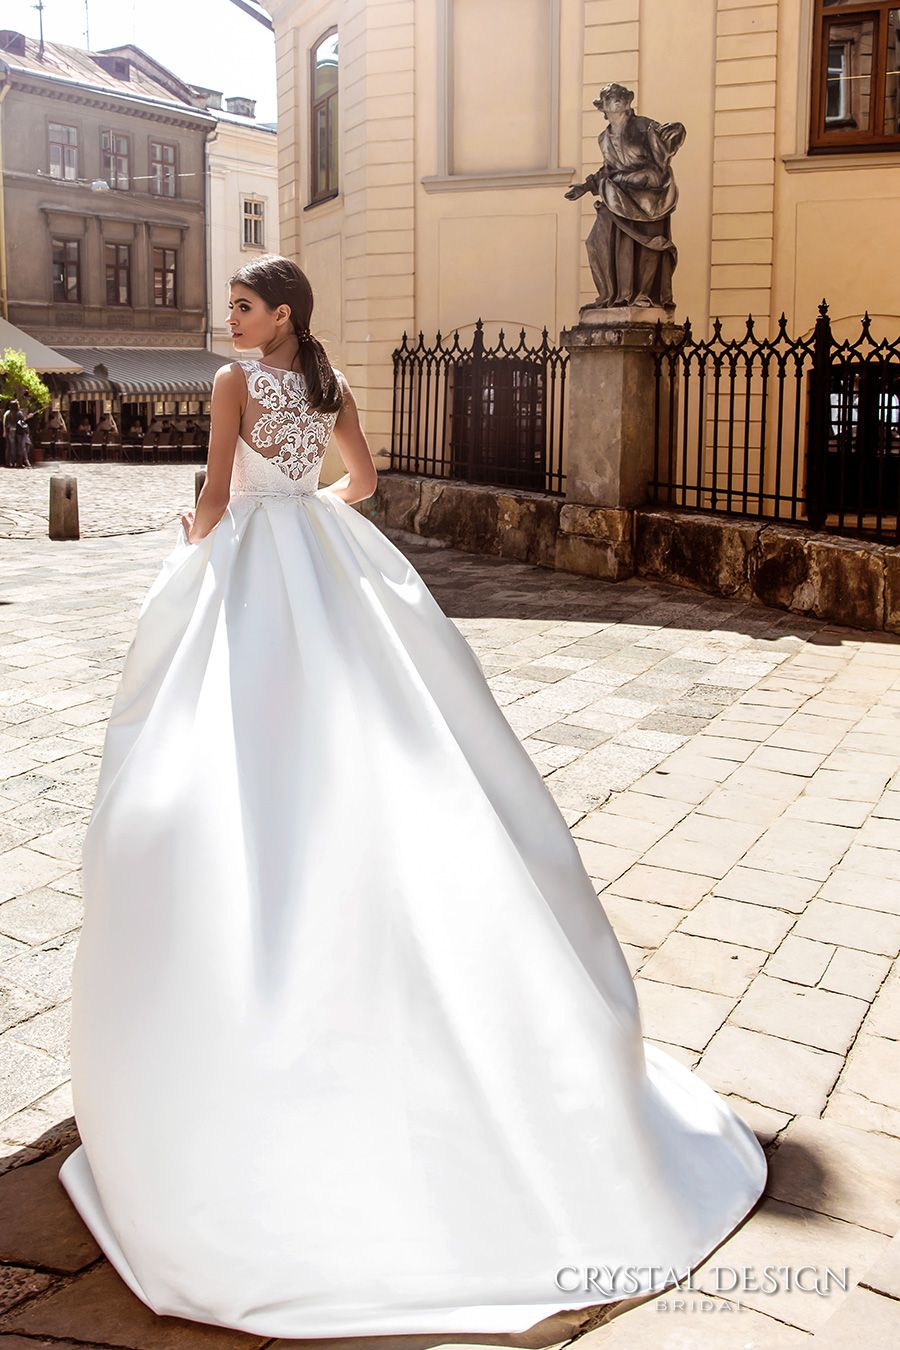 Wedding dress with short front and long back  Crystal Design  Wedding Dresses  Designs Dress lace and A line